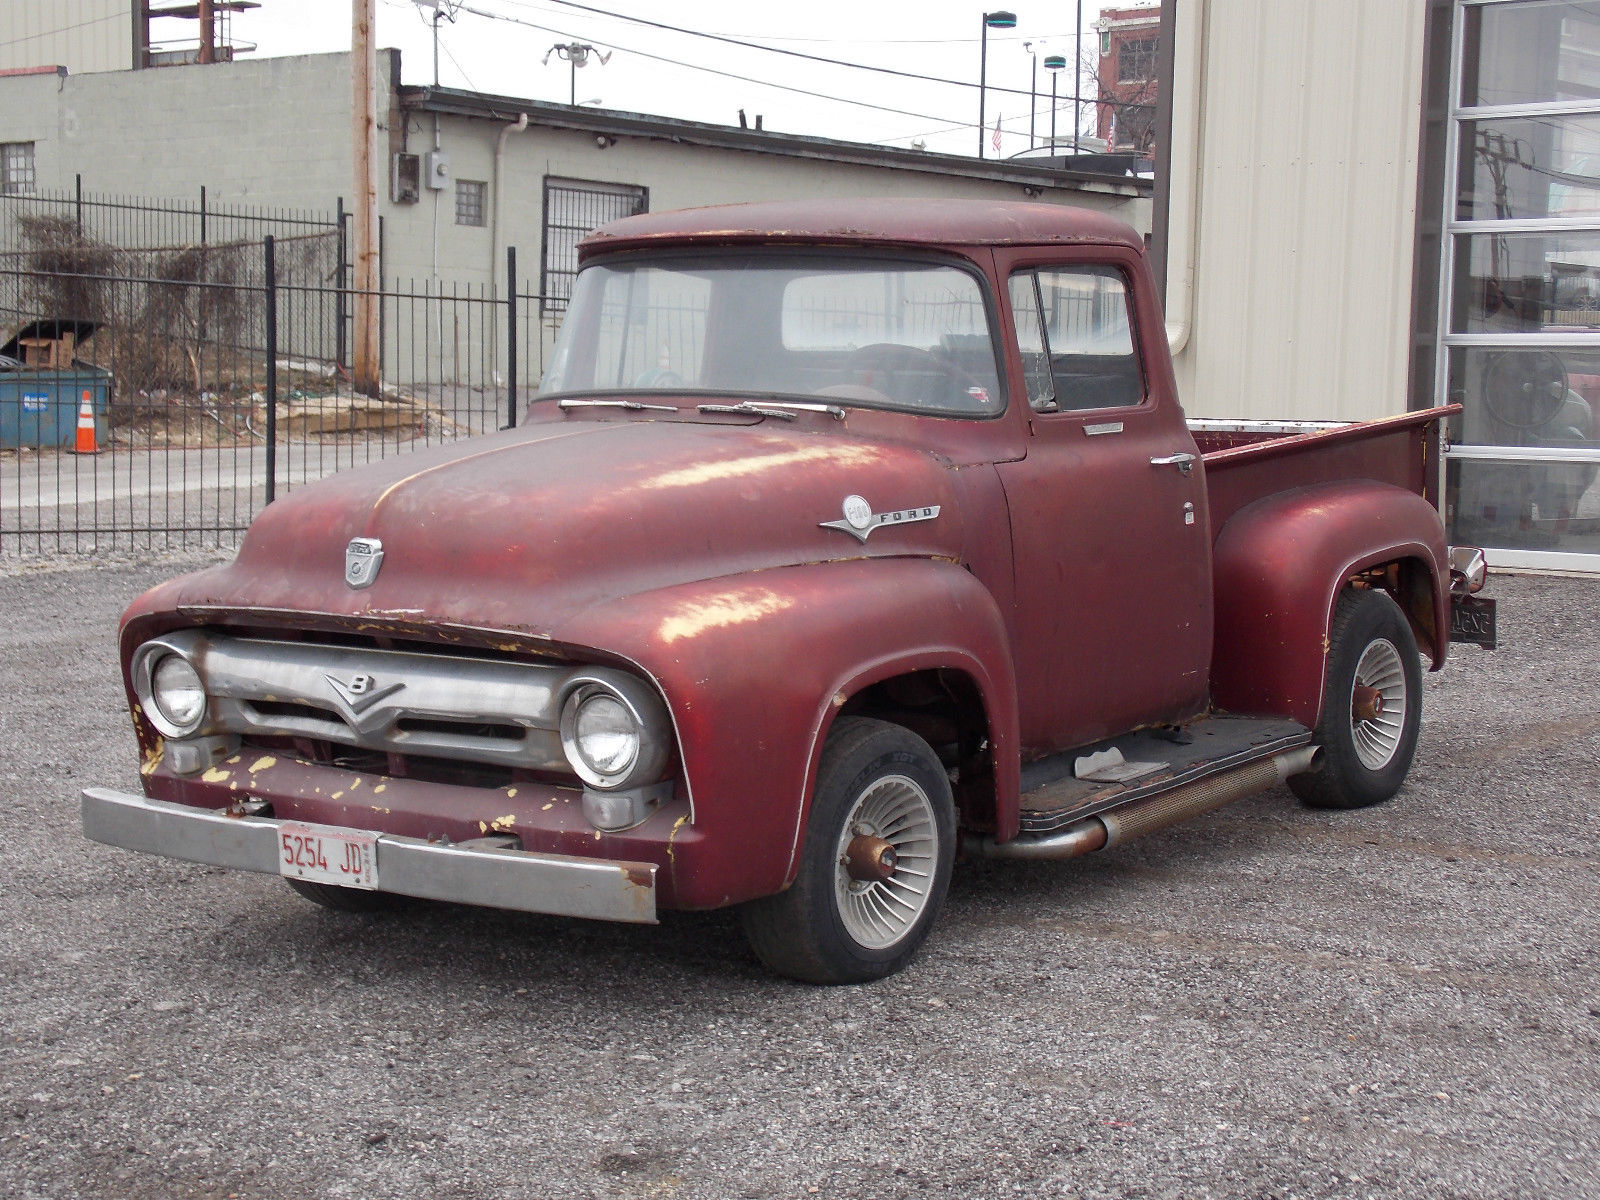 1956 ford f100 pickup truck solid project motor runs clean title no reserve classic ford f. Black Bedroom Furniture Sets. Home Design Ideas